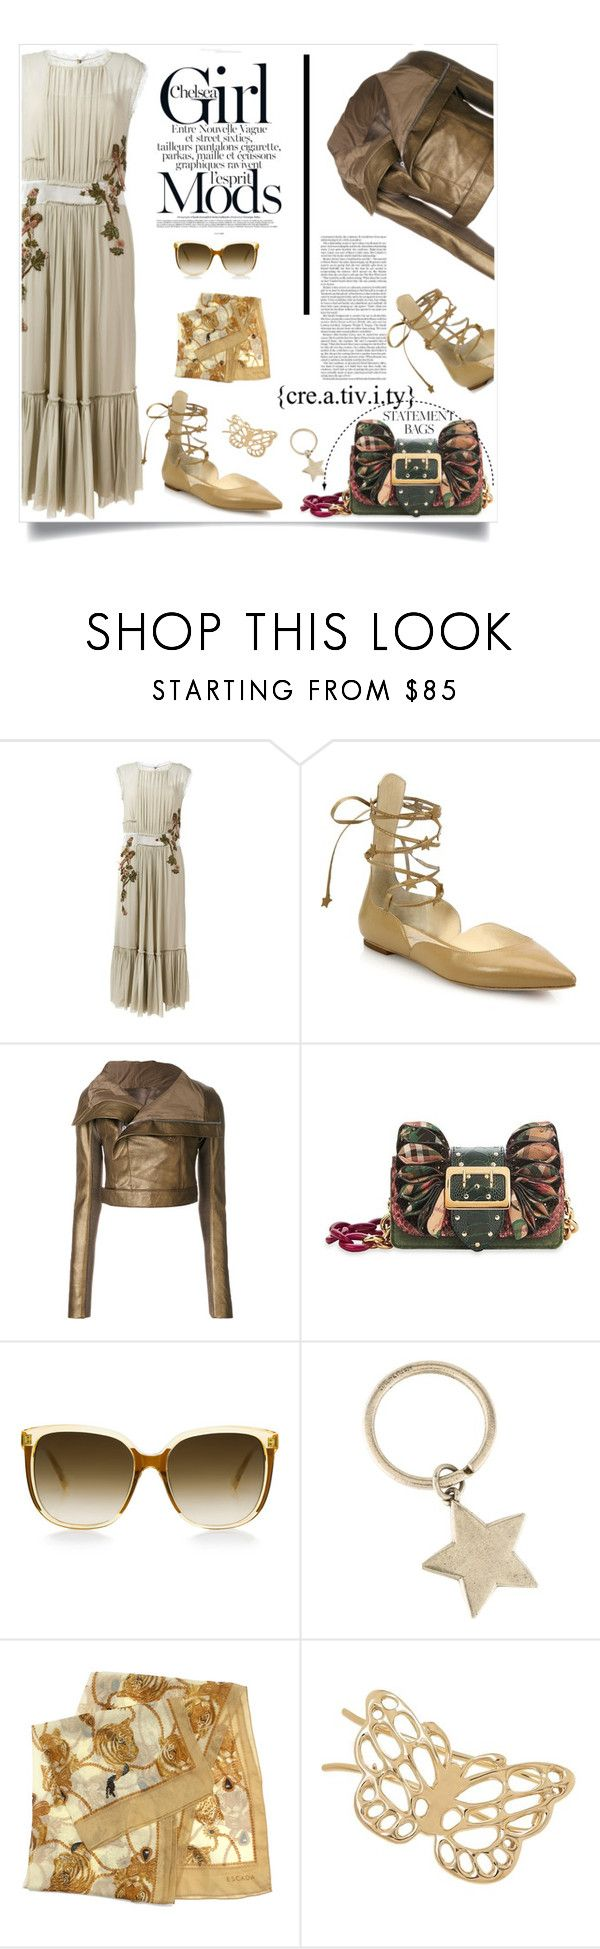 """""""..."""" by hani-bgd ❤ liked on Polyvore featuring Alberta Ferretti, Isa Tapia, Rick Owens, Burberry, Nicole, Steven Alan, Tiffany & Co., ESCADA, dress and bags"""